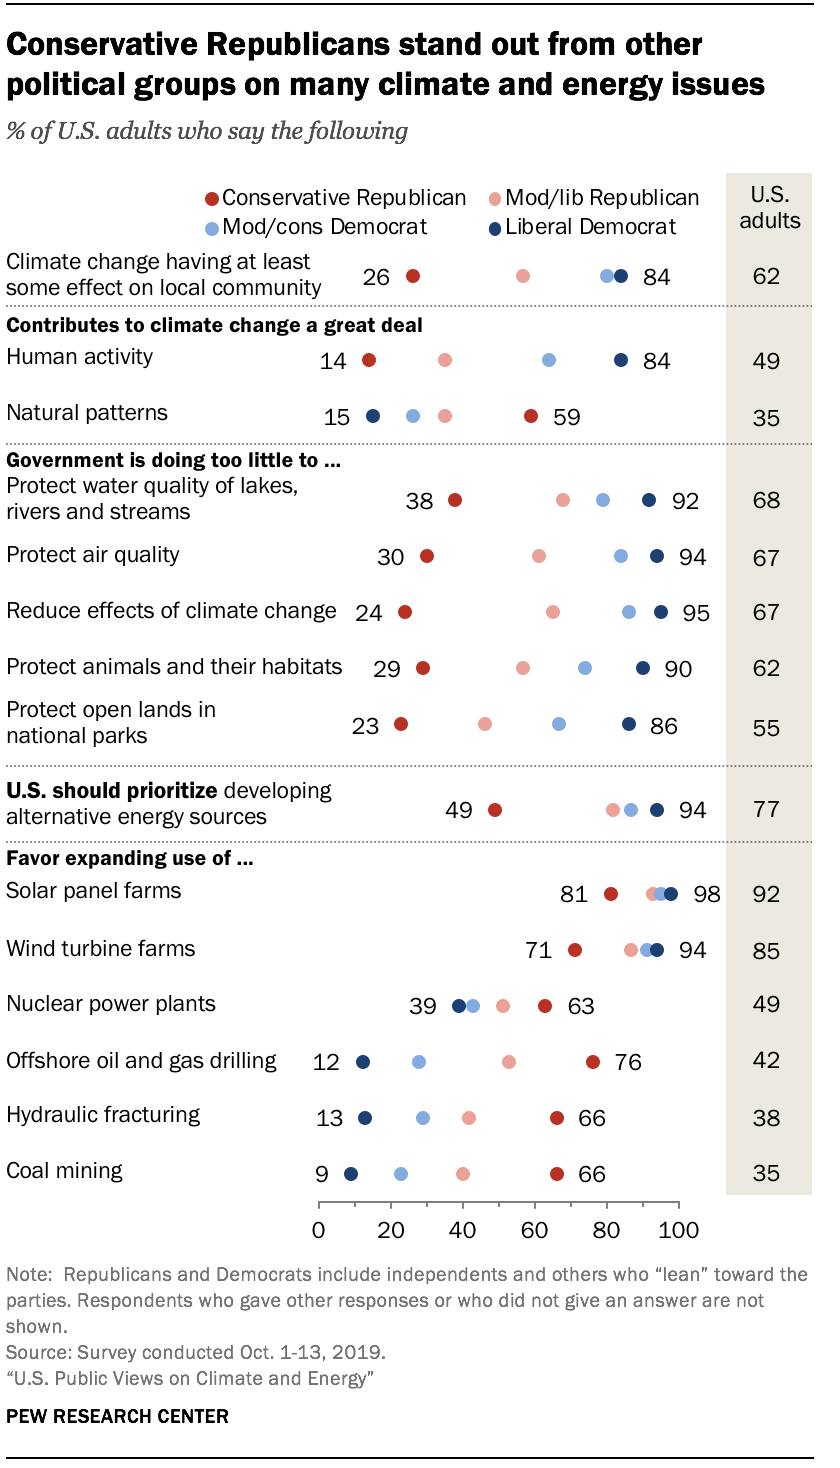 Conservative Republicans stand out from other political groups on many climate and energy issues